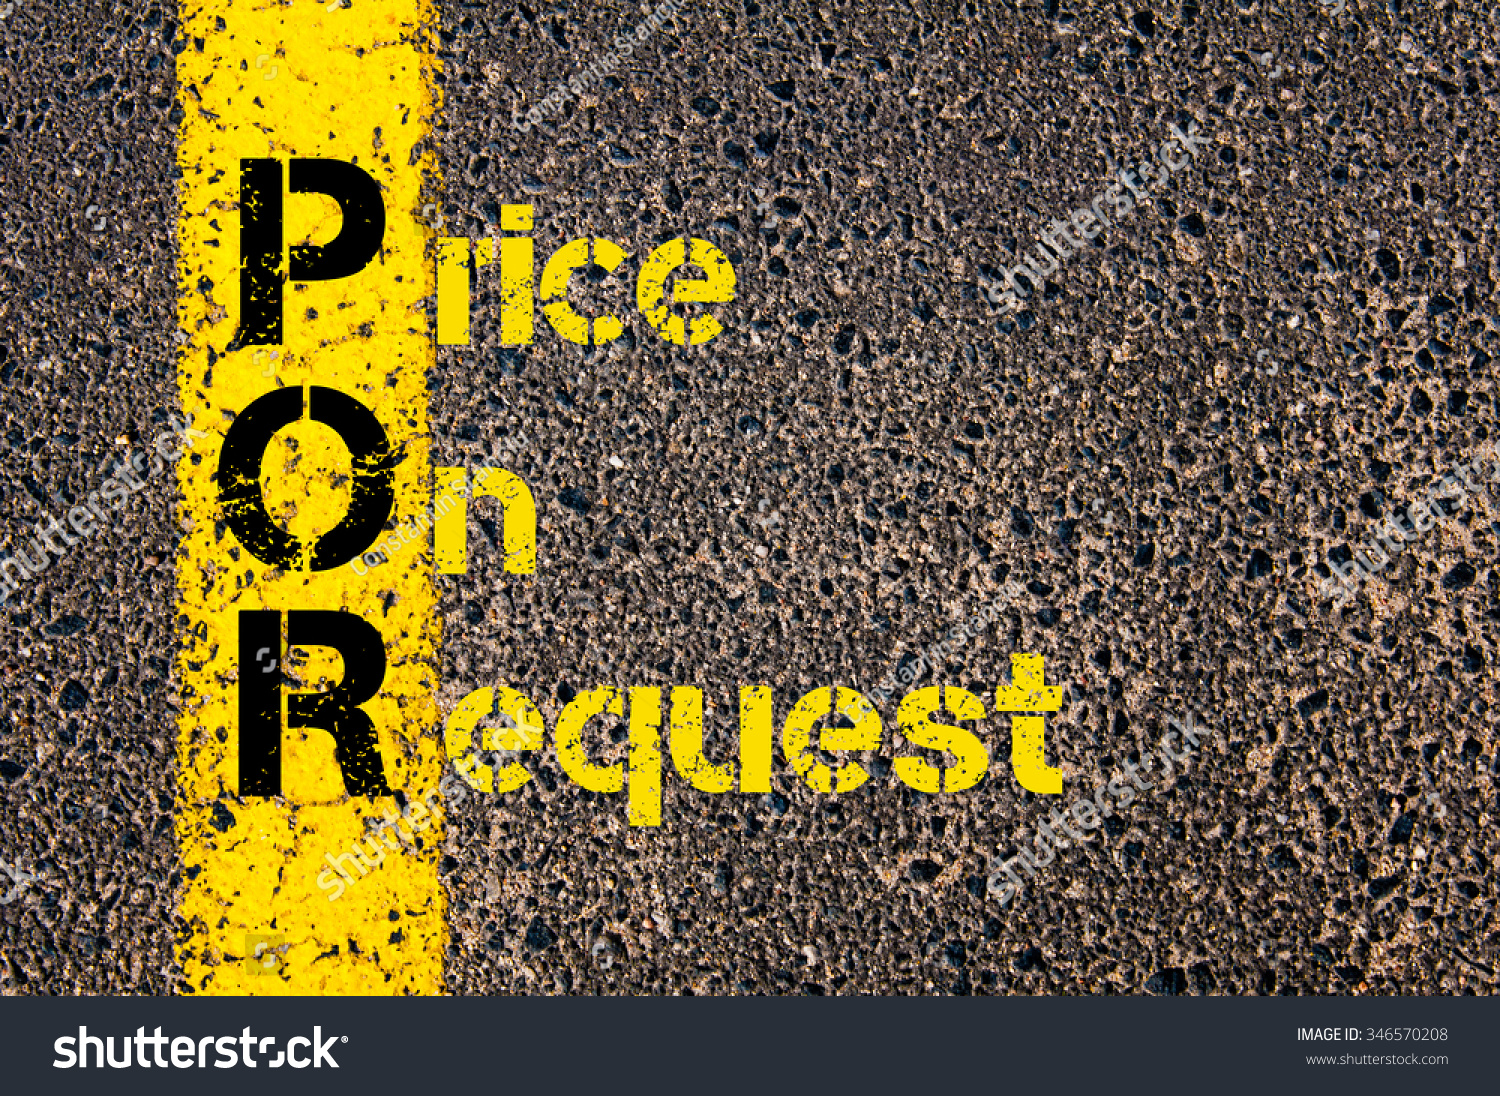 Concept image of Accounting Business Acronym POR Price On Request written over road marking yellow paint line. #346570208